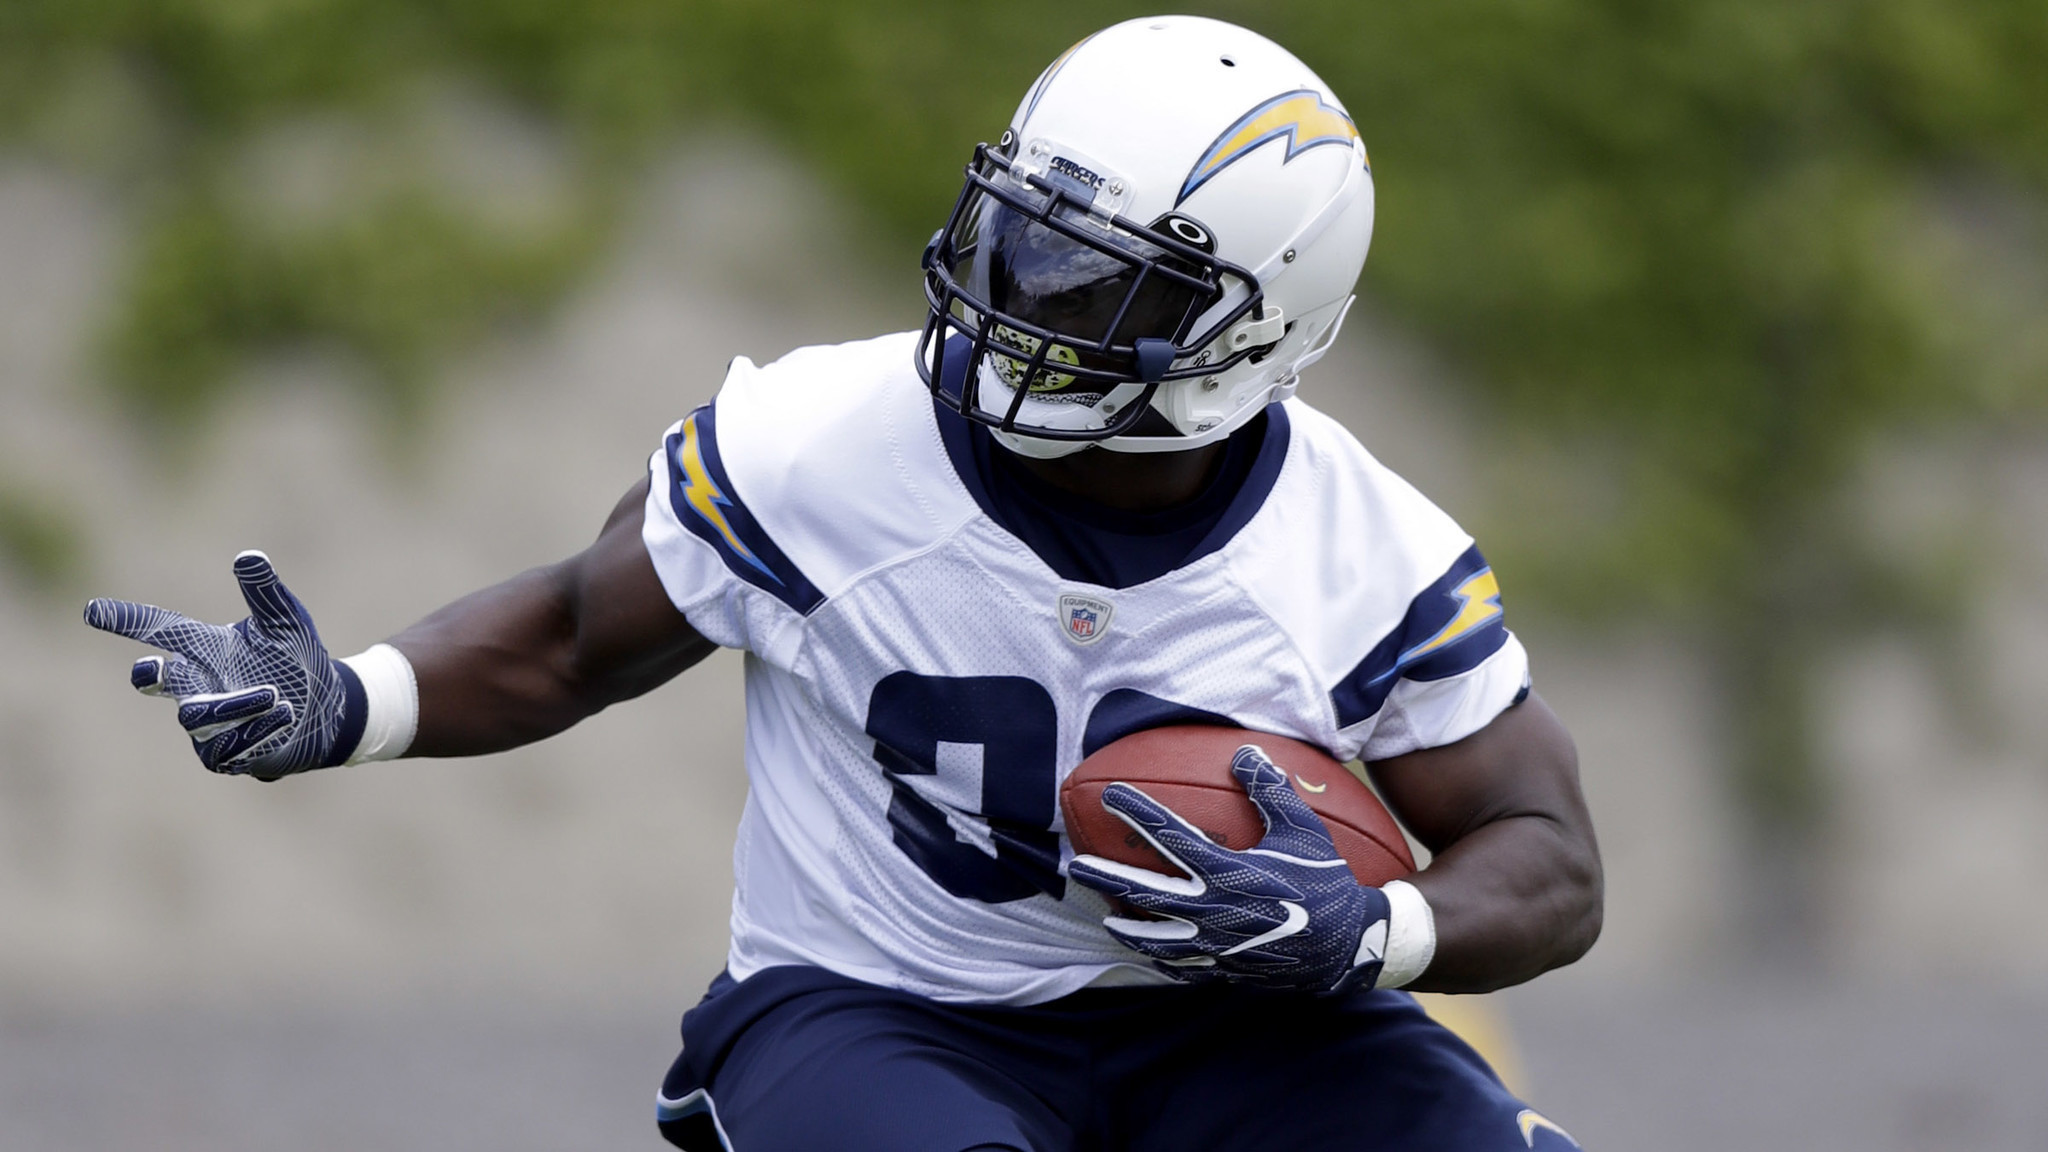 Chargers Are Looking For A New Wave Of Unheralded Players